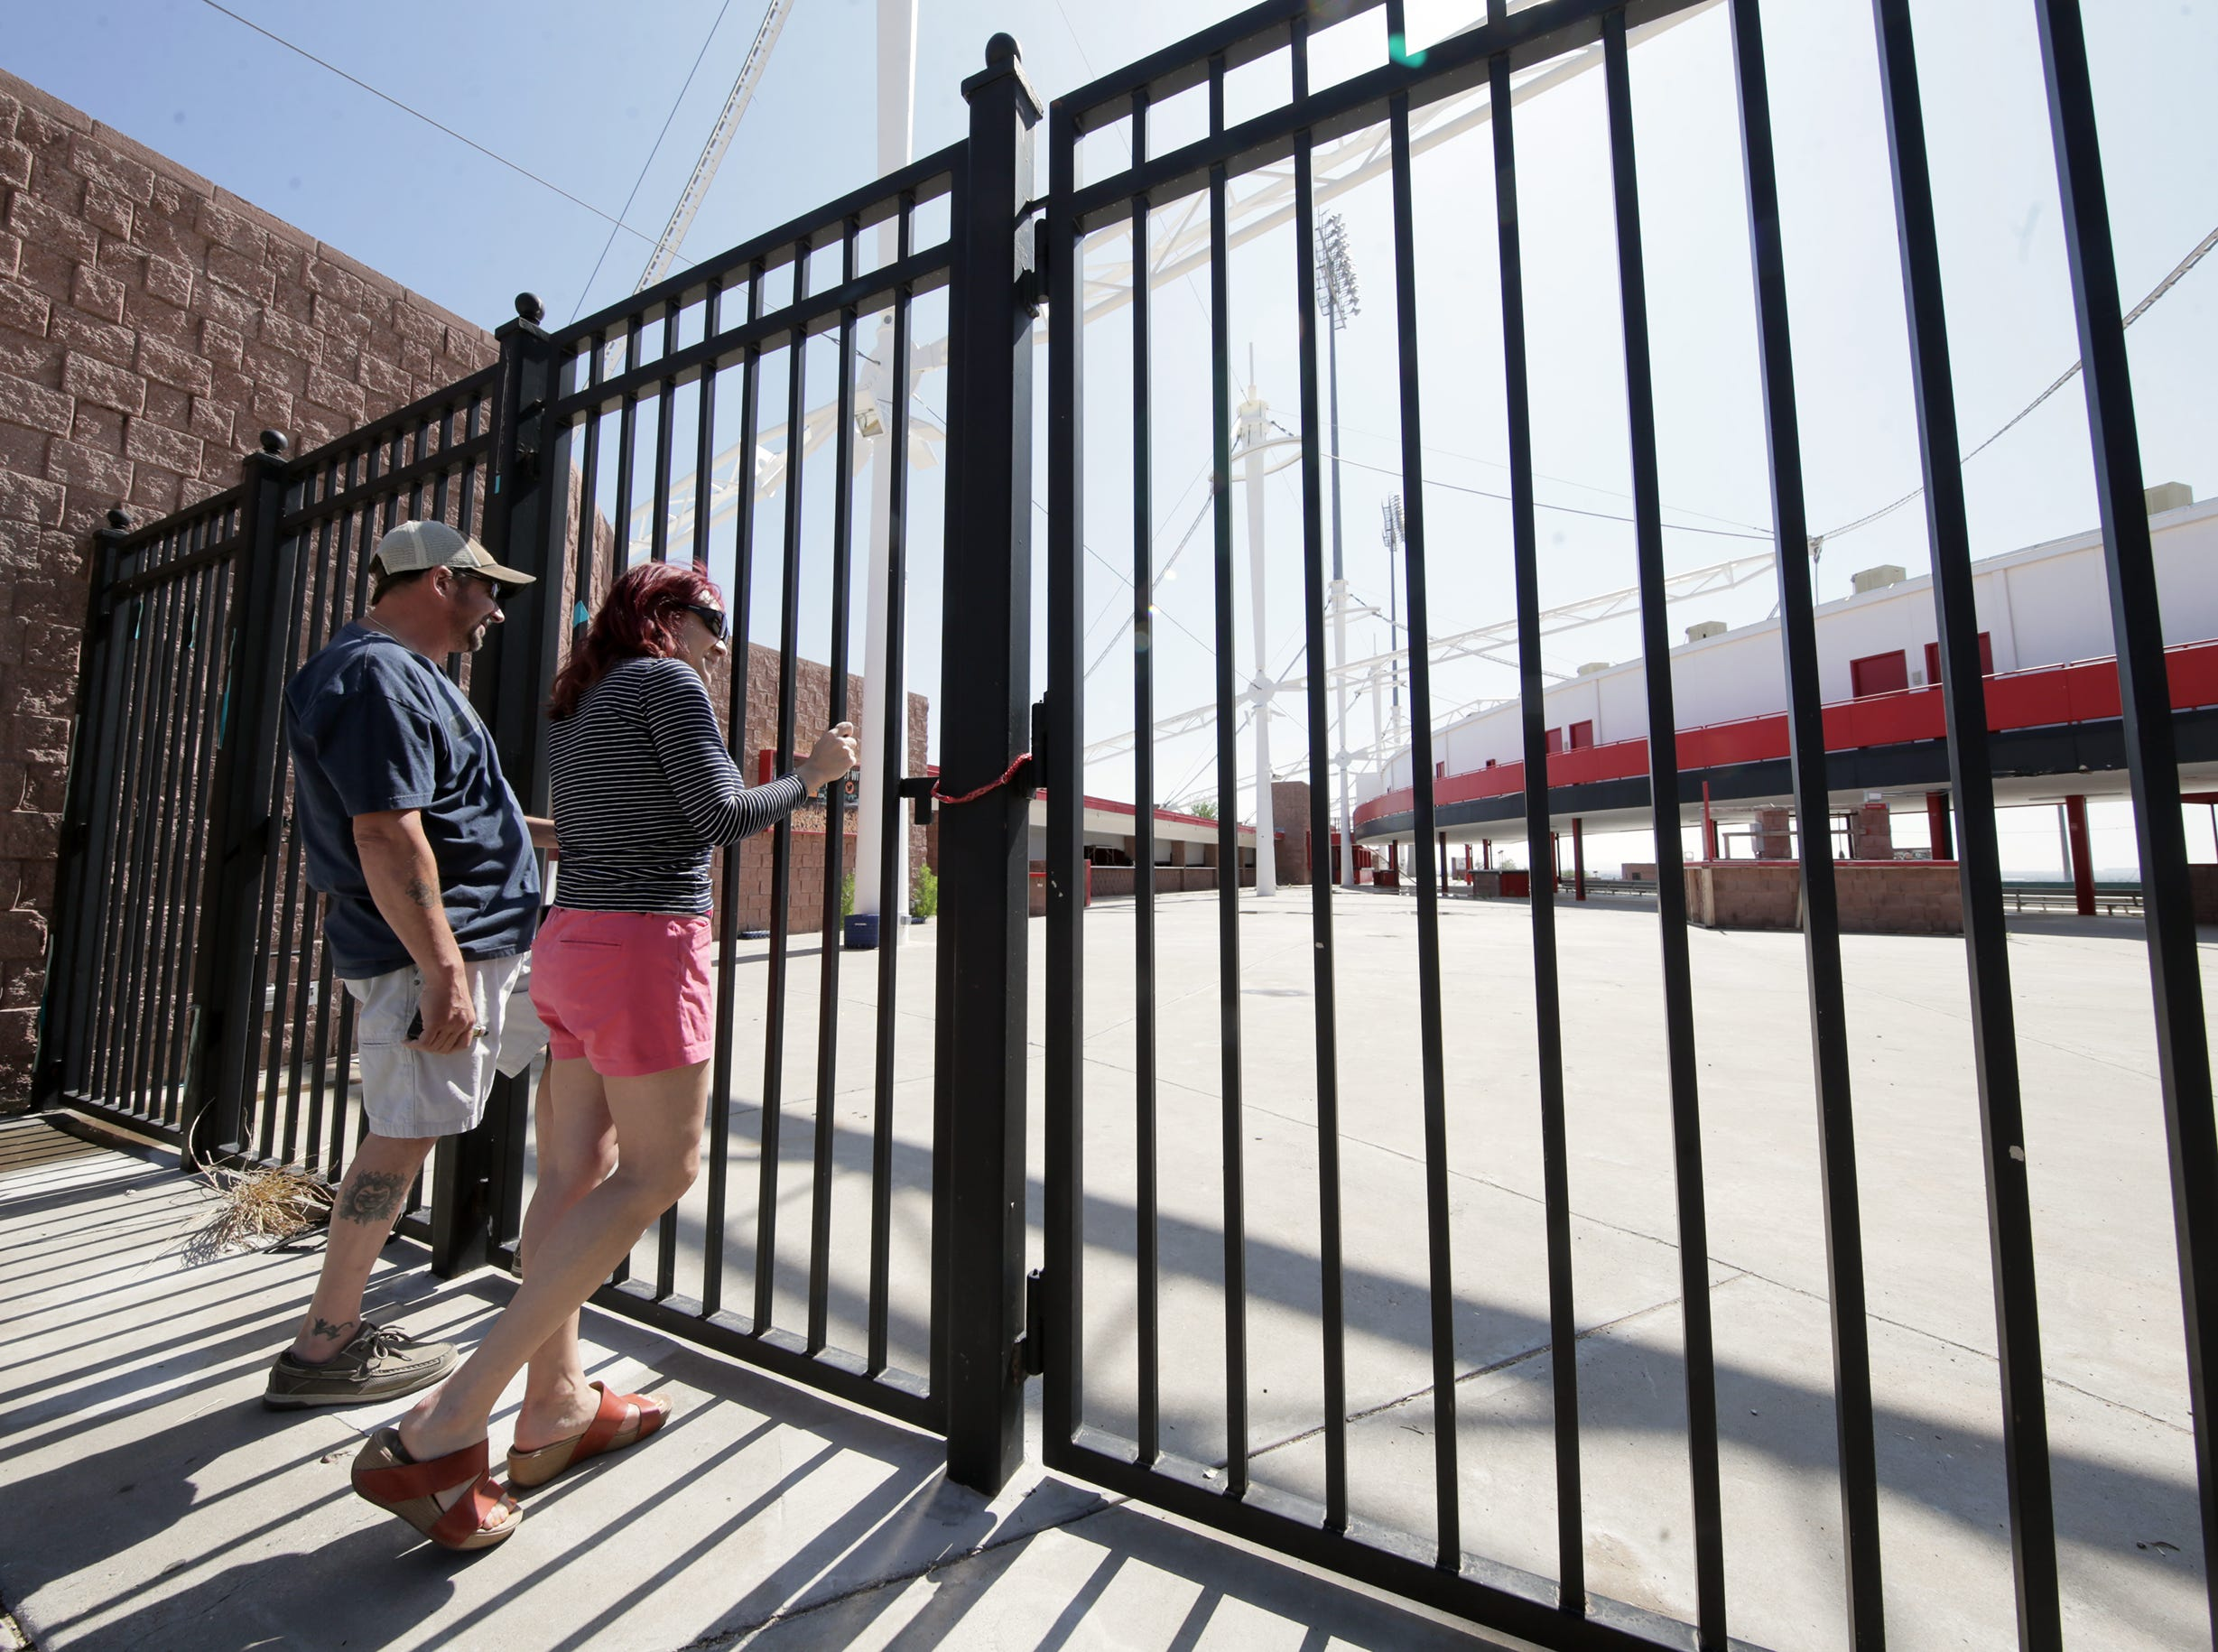 Mike Tocchetti and Christina Maxwell look through the gates at Cohen Stadium during Selfie Day at Cohen Stadium on Saturday, May 11, 2019, before demolition begins.